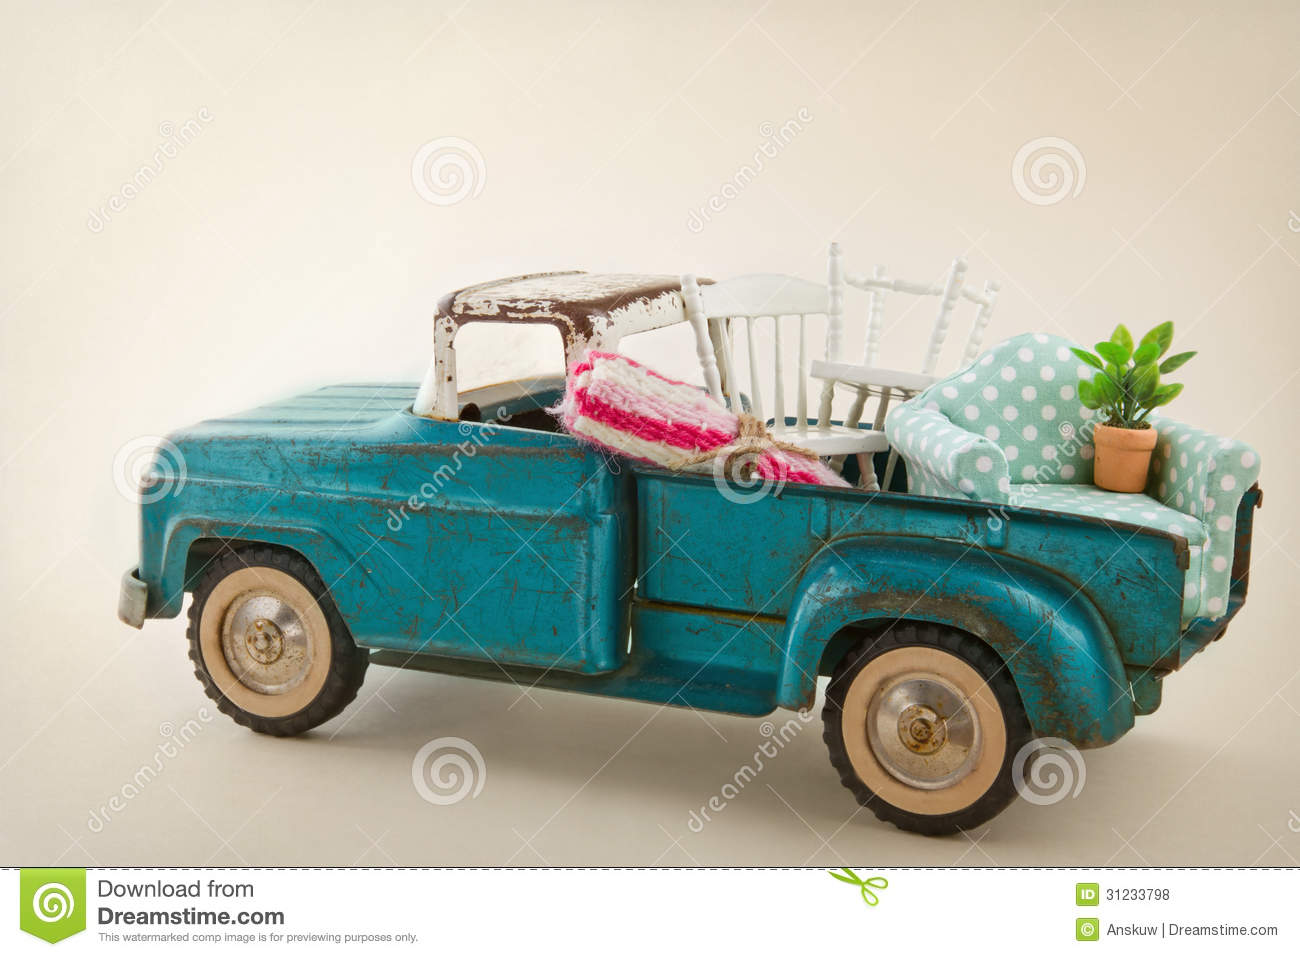 Toy Moving Truck Toy Truck Packed With Furniture Royalty Free Stock Photos